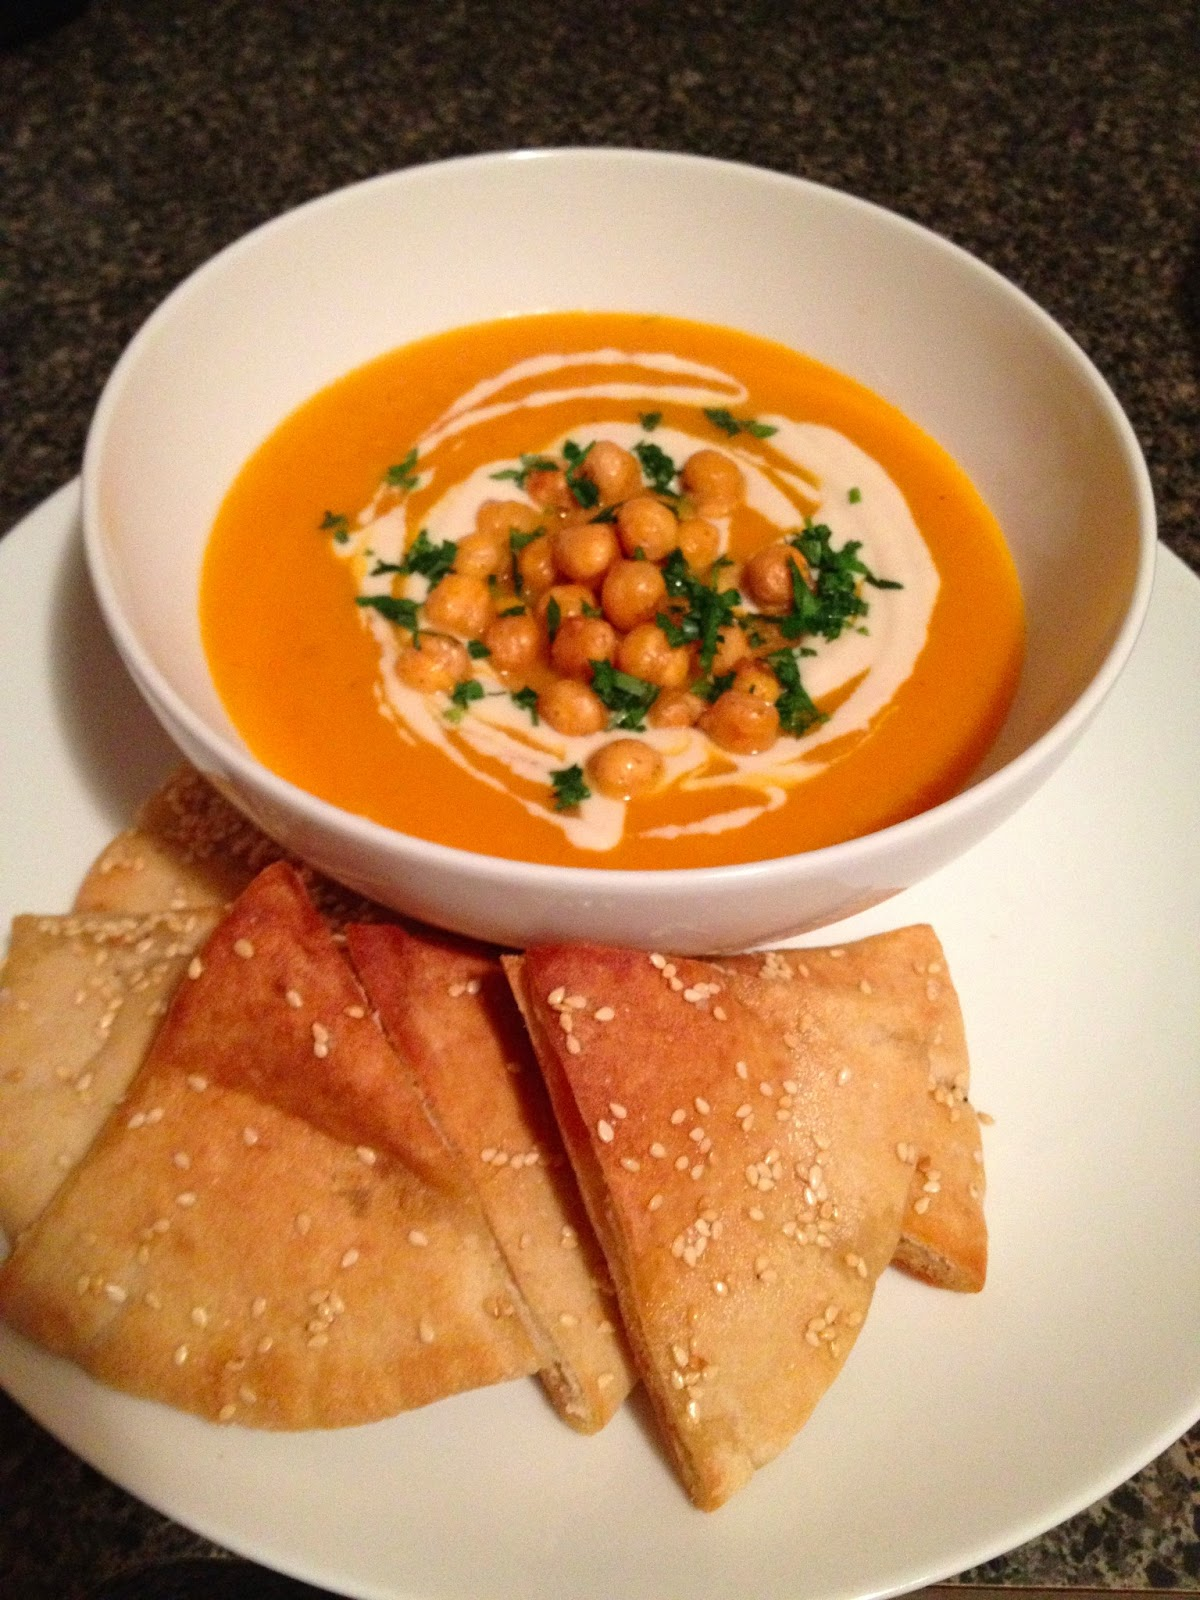 Carrot Soup with Tahini and Crisped Chickpeas | Chop to Change